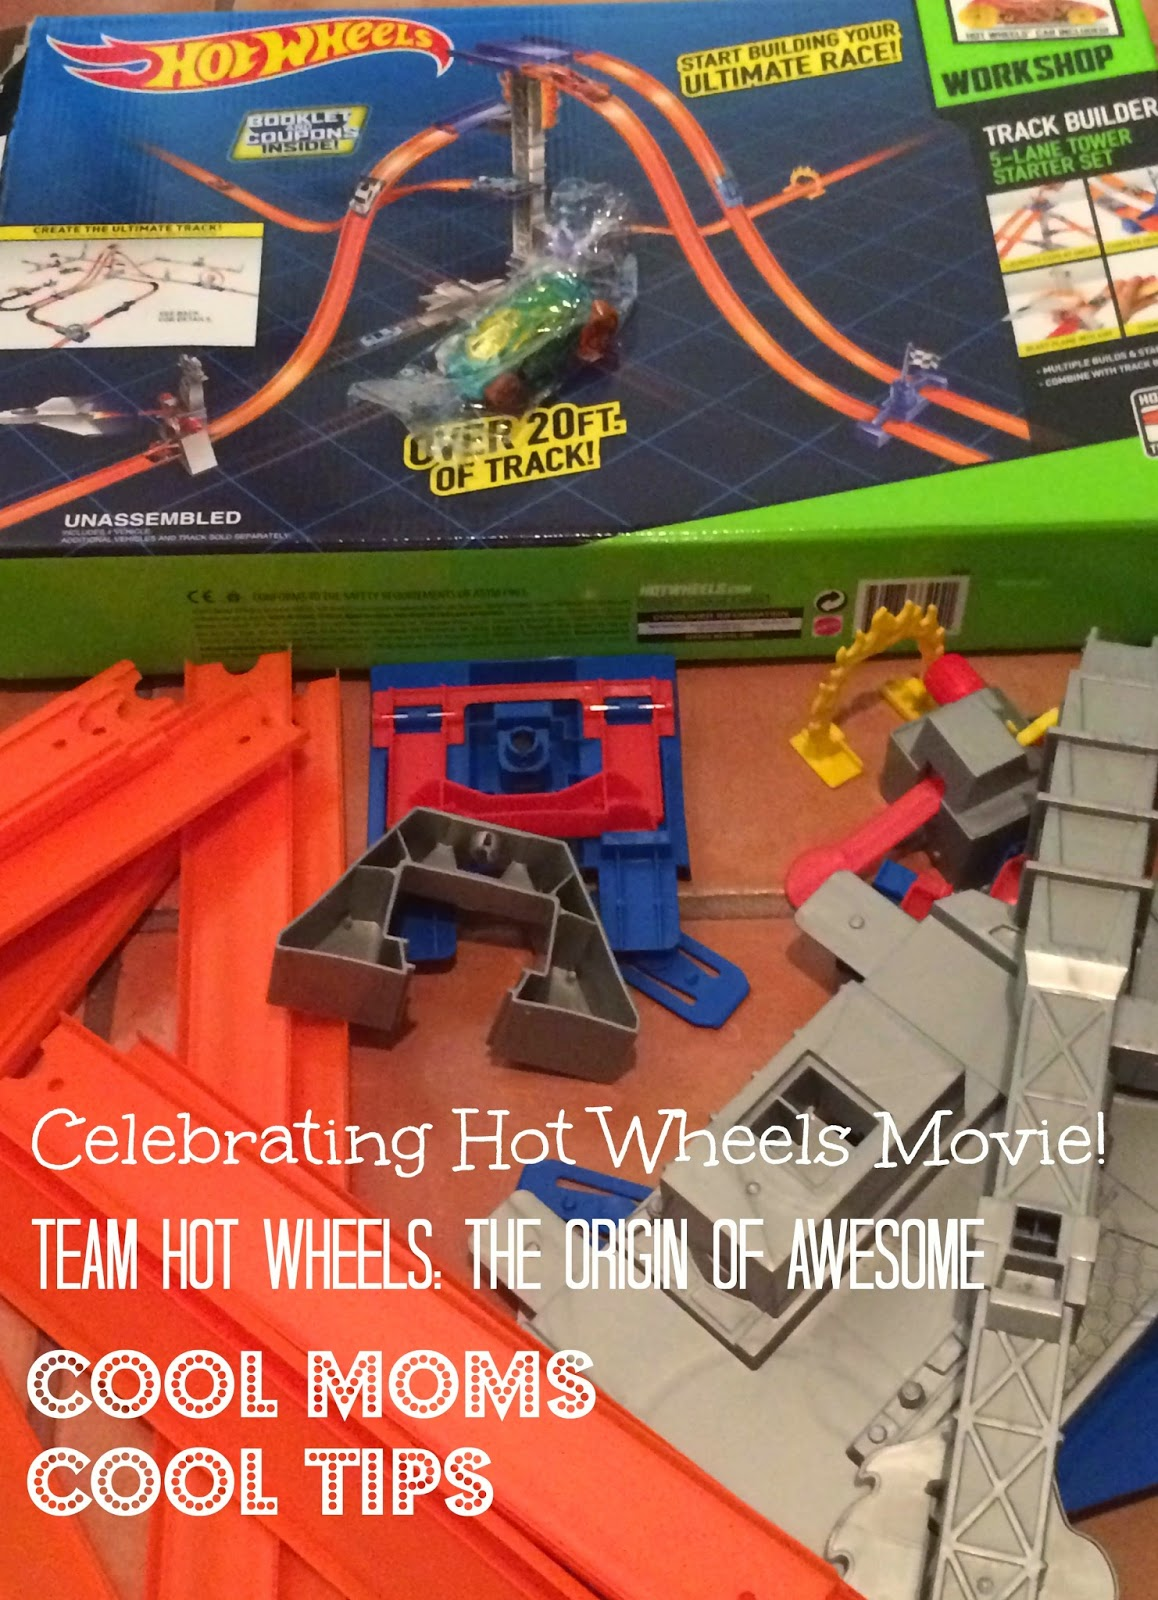 cool moms cool tips Hot Wheels new movie Twam Hot Wheels the Origin of Awesome playing